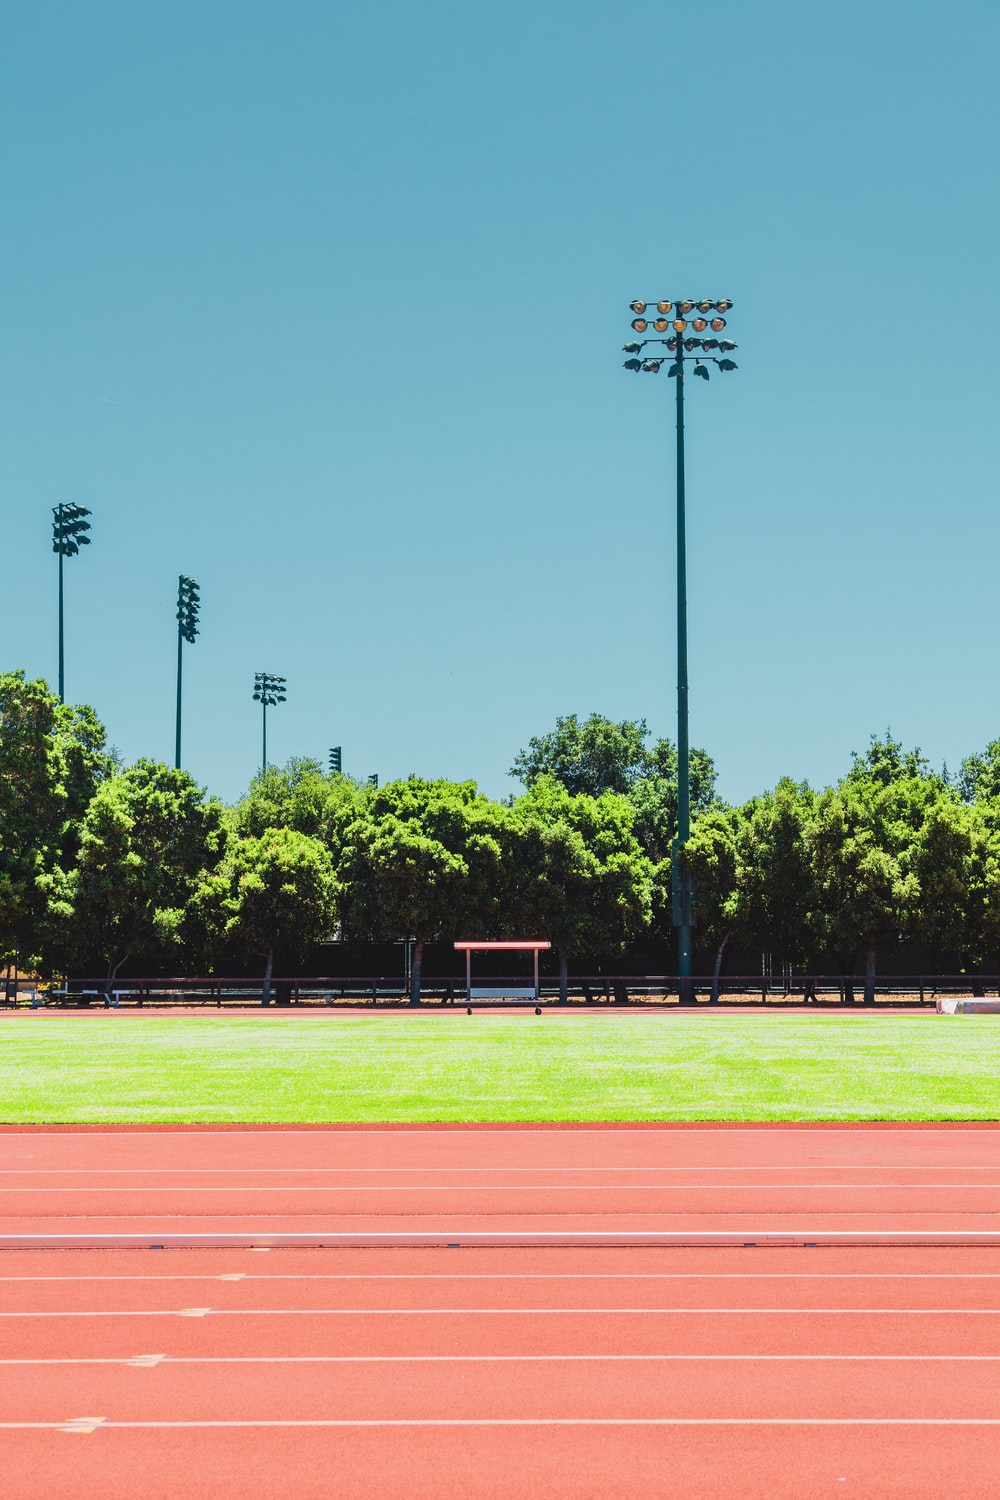 brown and green track field during daytime